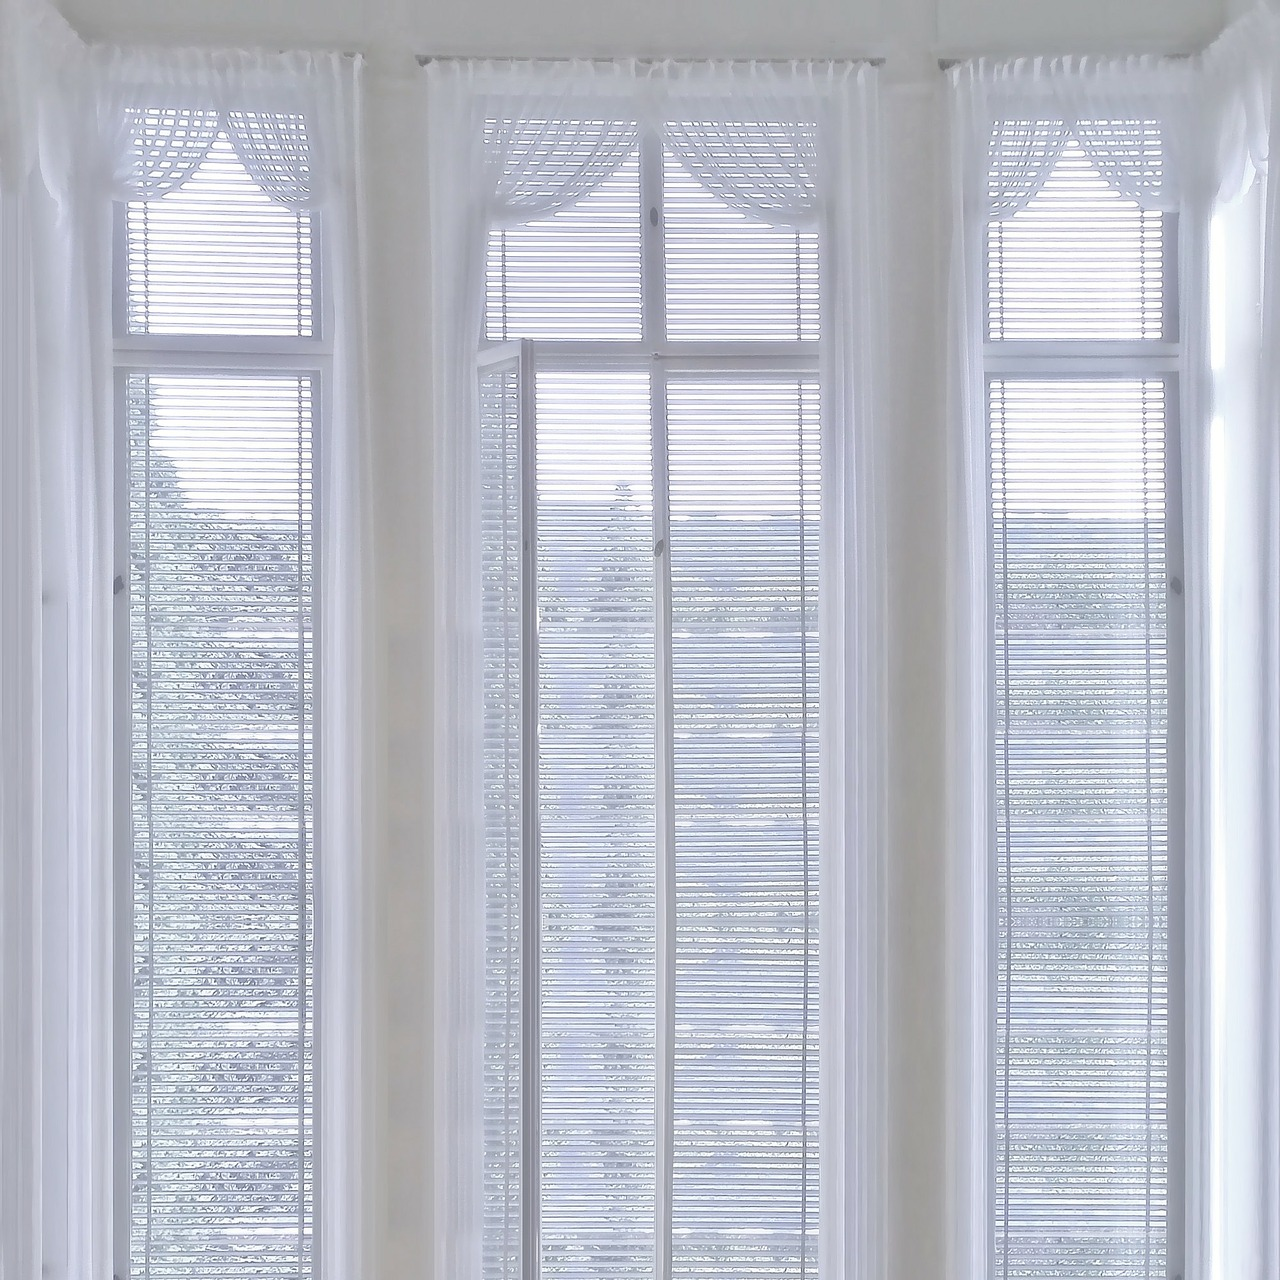 Window with treatments, blinds, and valances